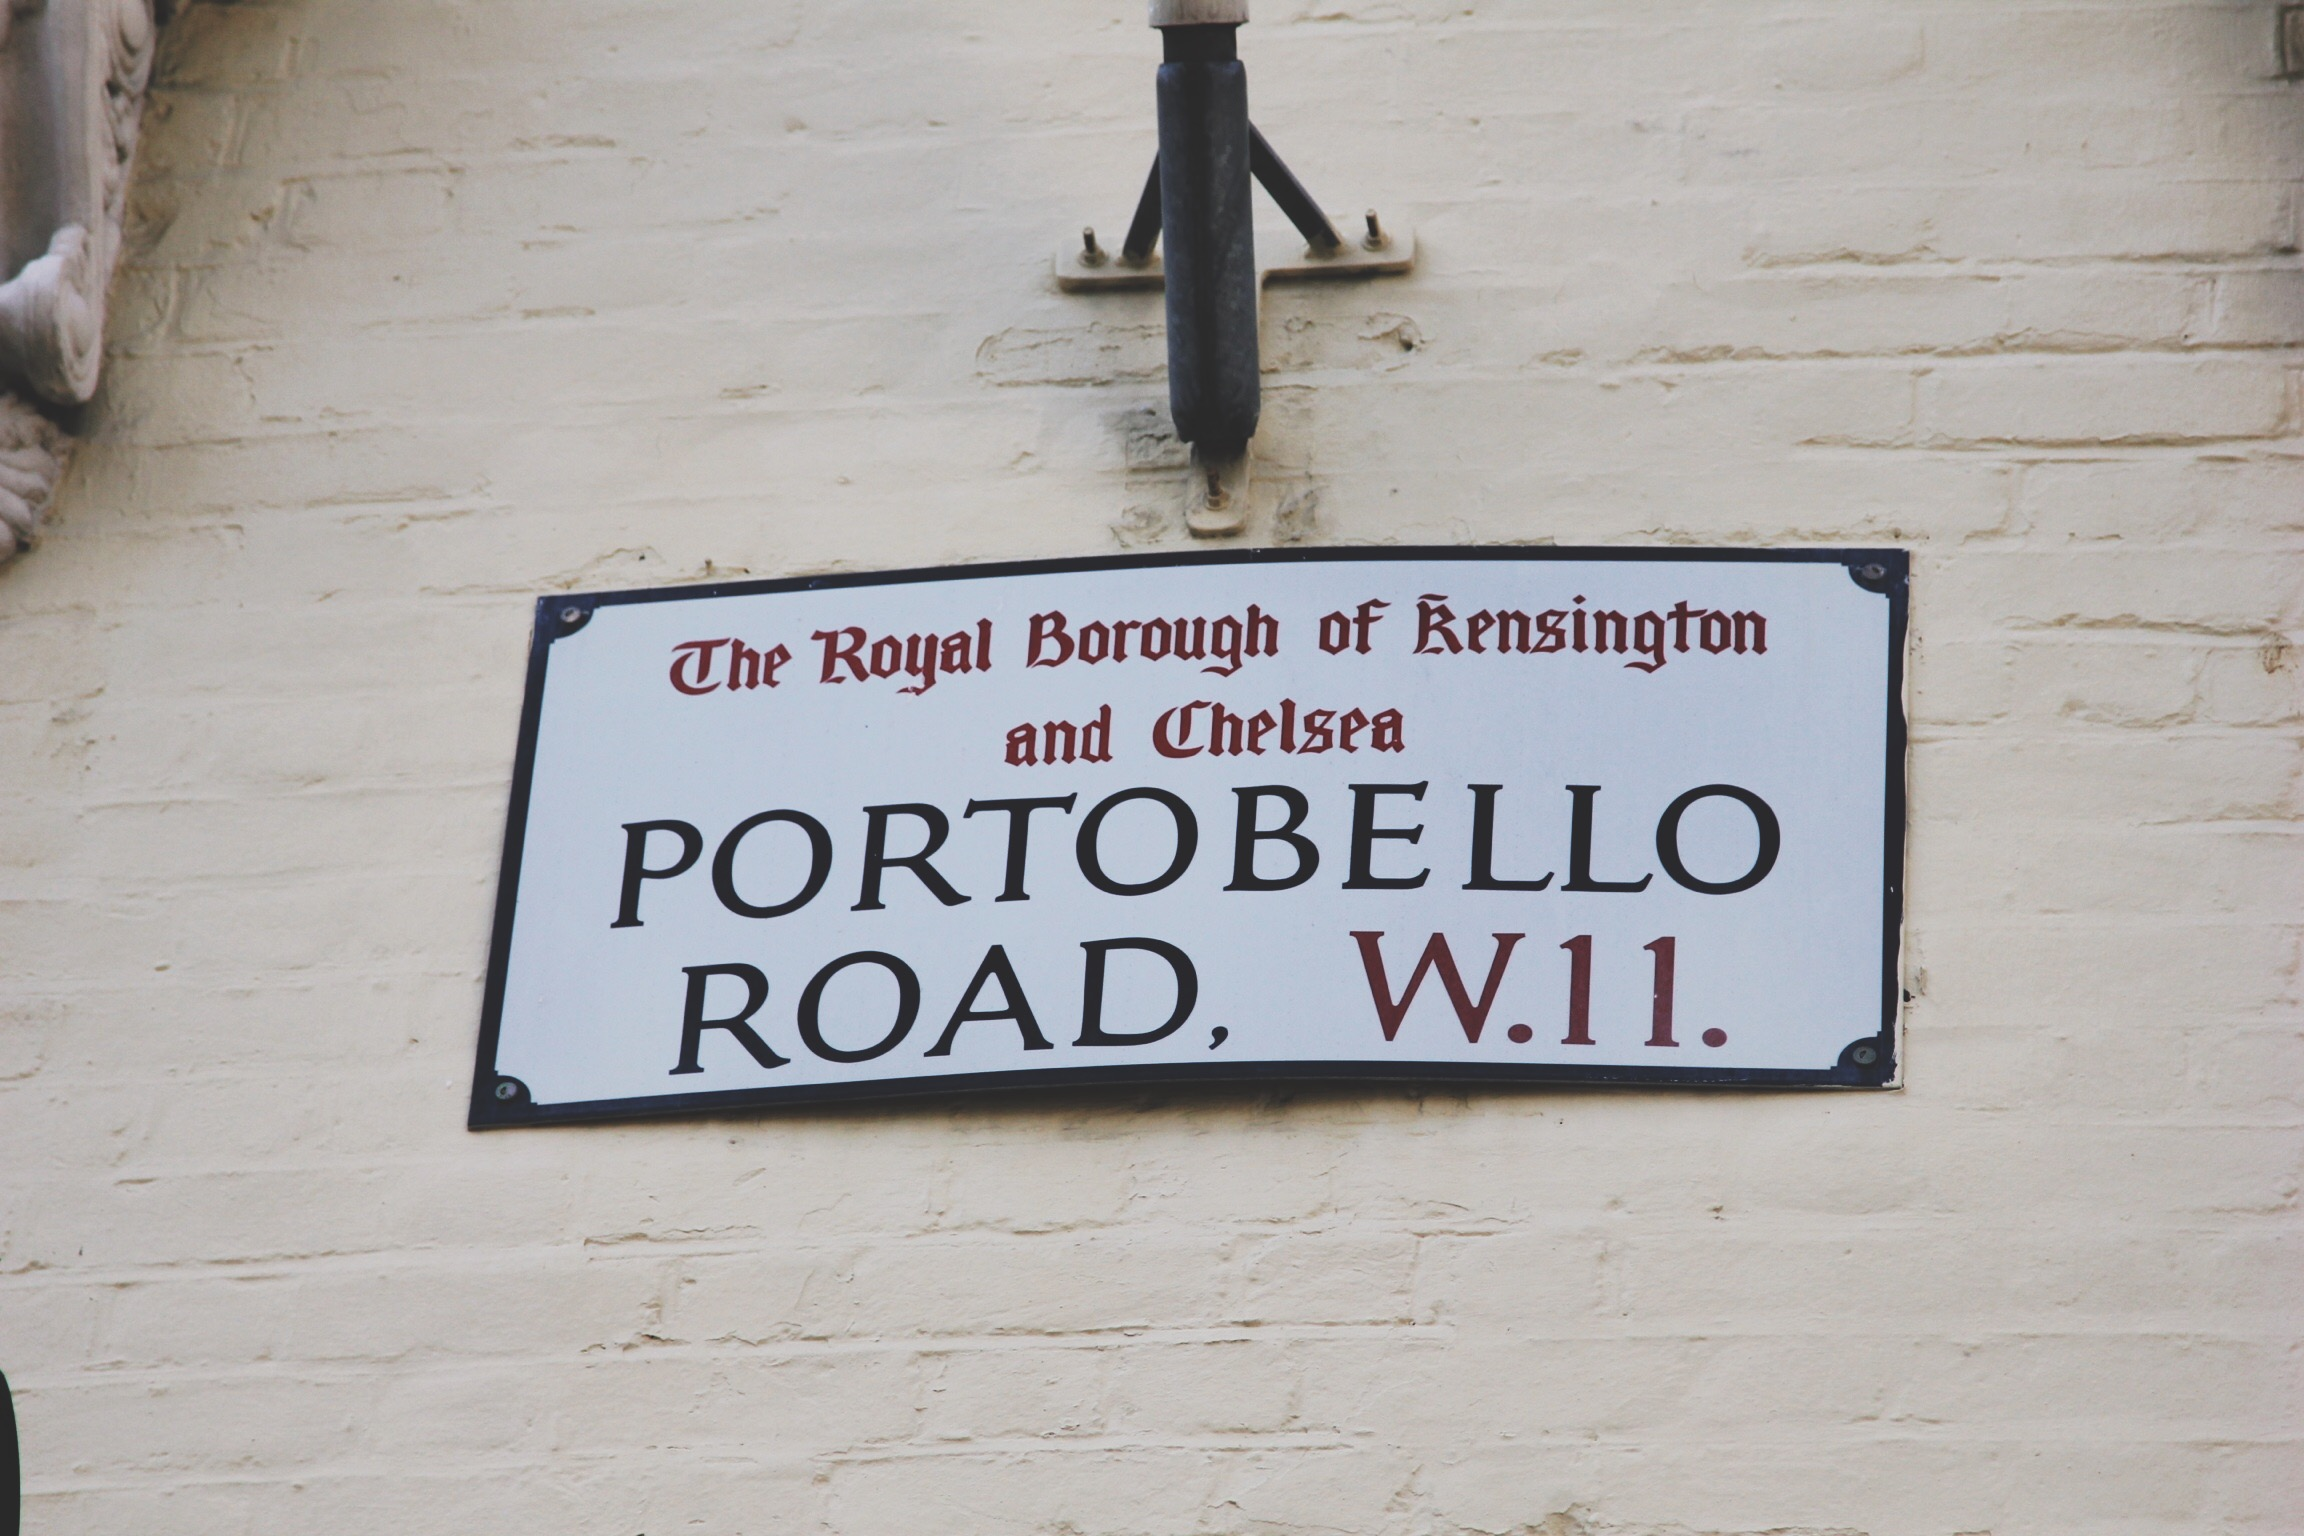 Portobello-road-Londres.jpg